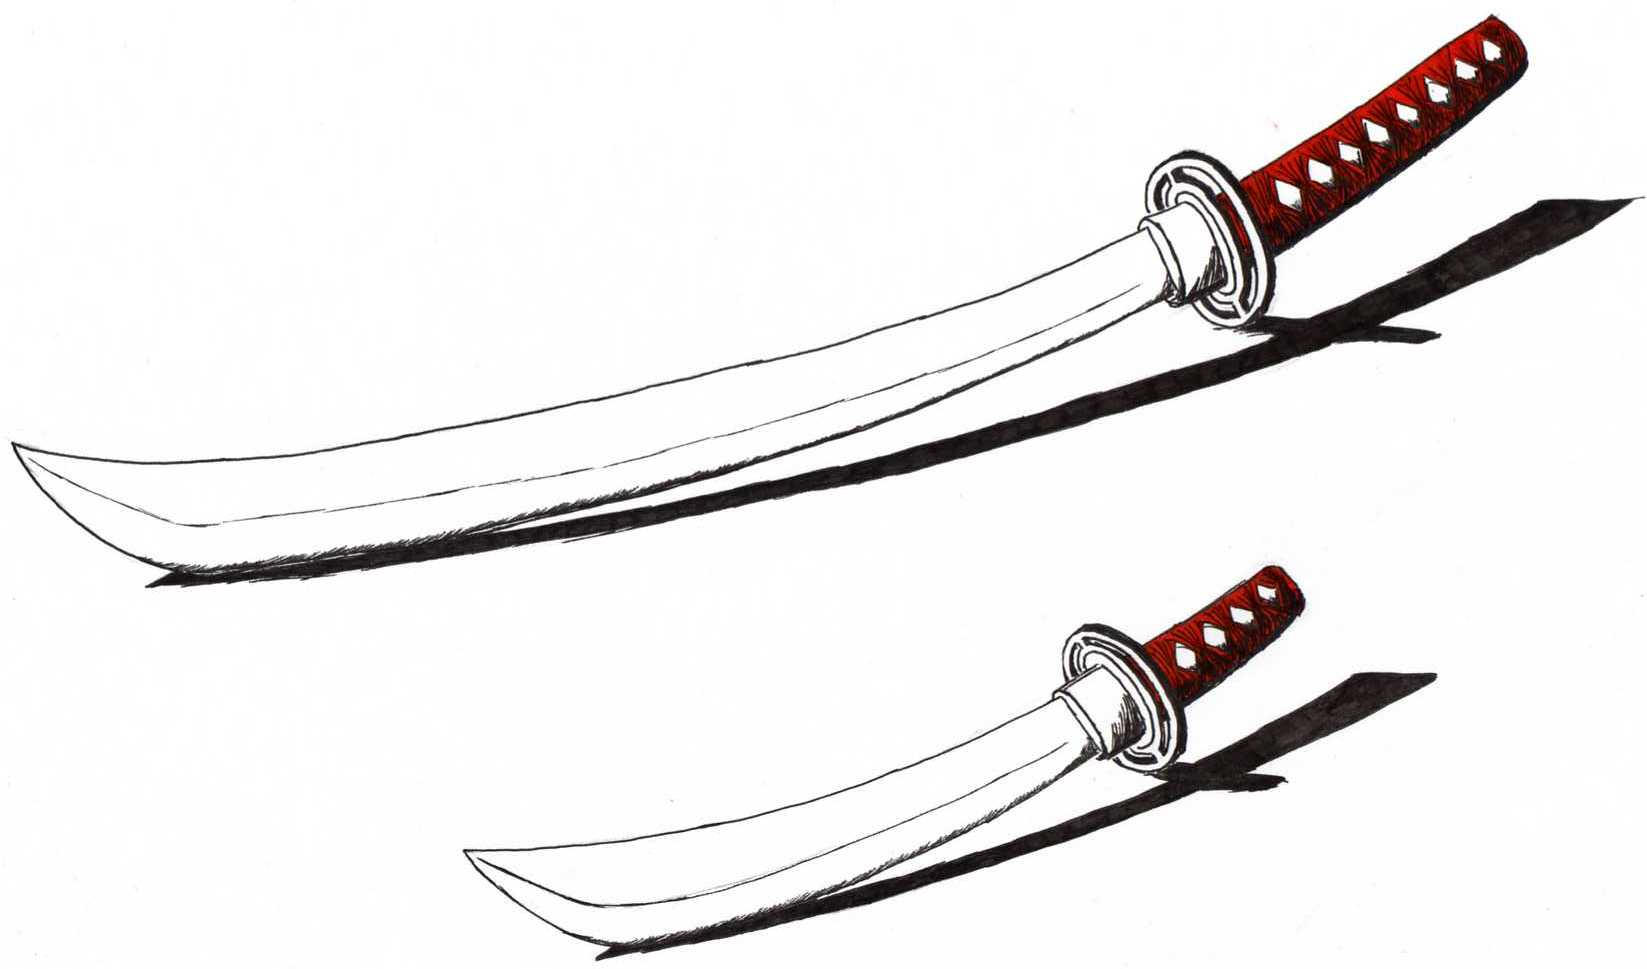 Katana with Wakizashi 2 by seventh-samurai on DeviantArt